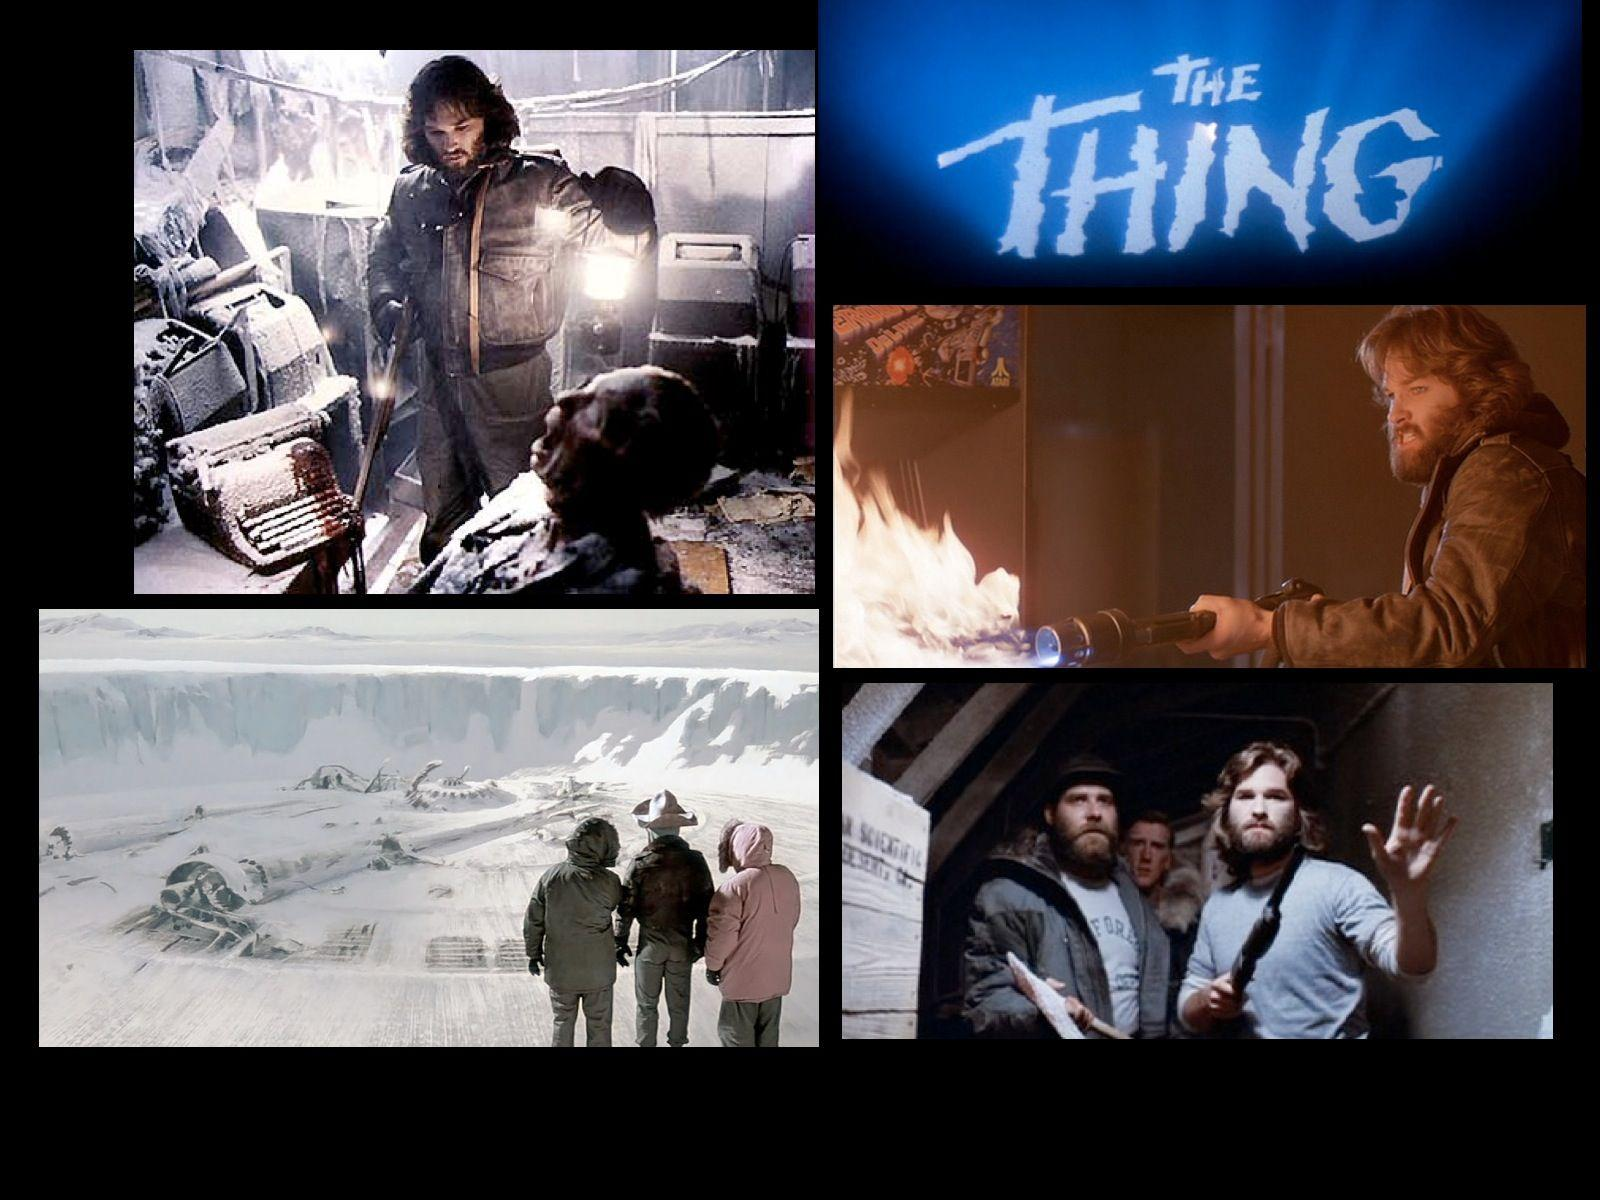 The Thing HD wallpapers. Download The Thing desktop backgrounds